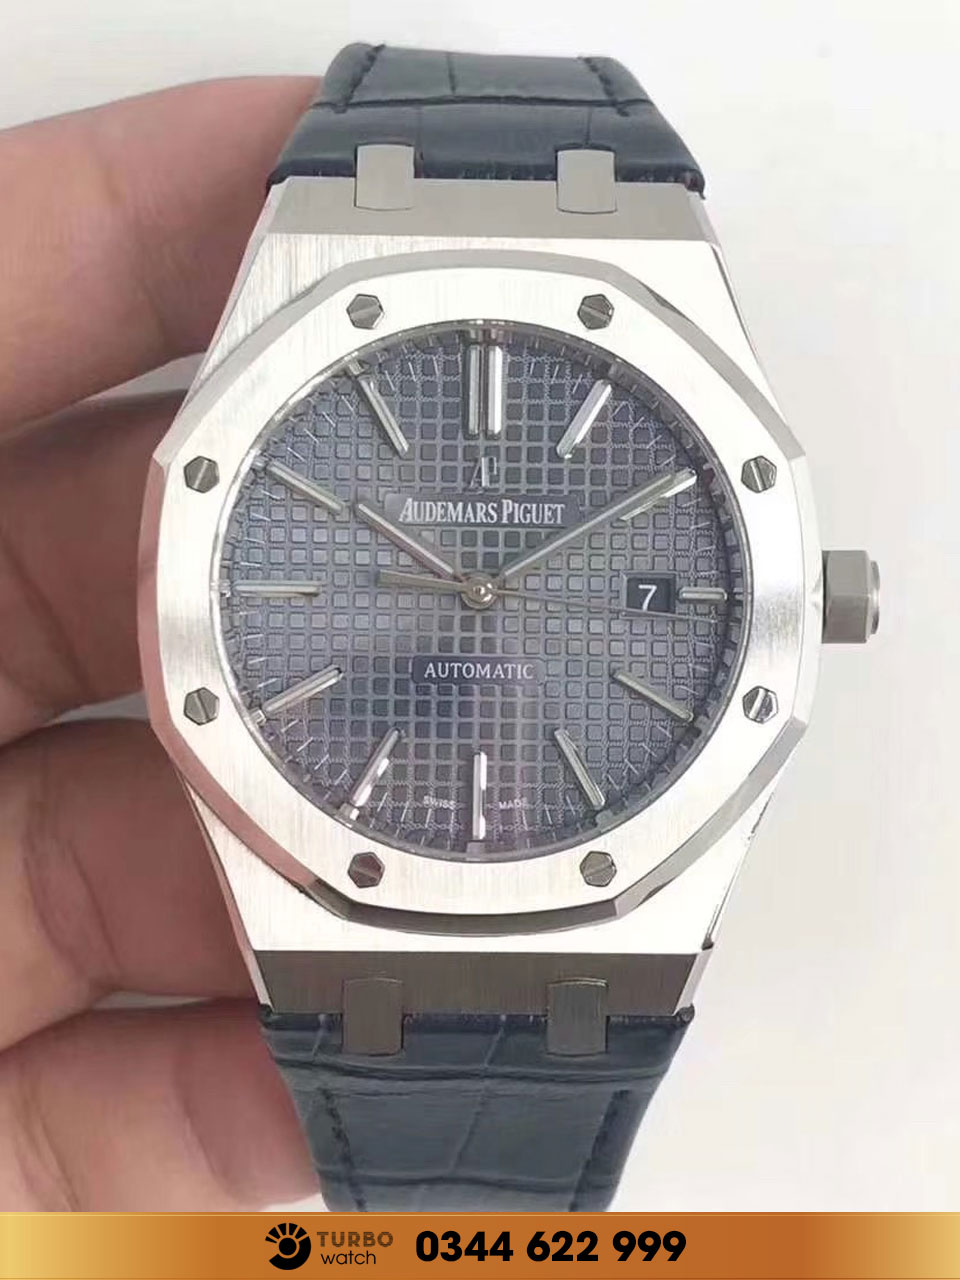 Audemas piguet Royal Oak 26320ST replica 1-1 cao cấp